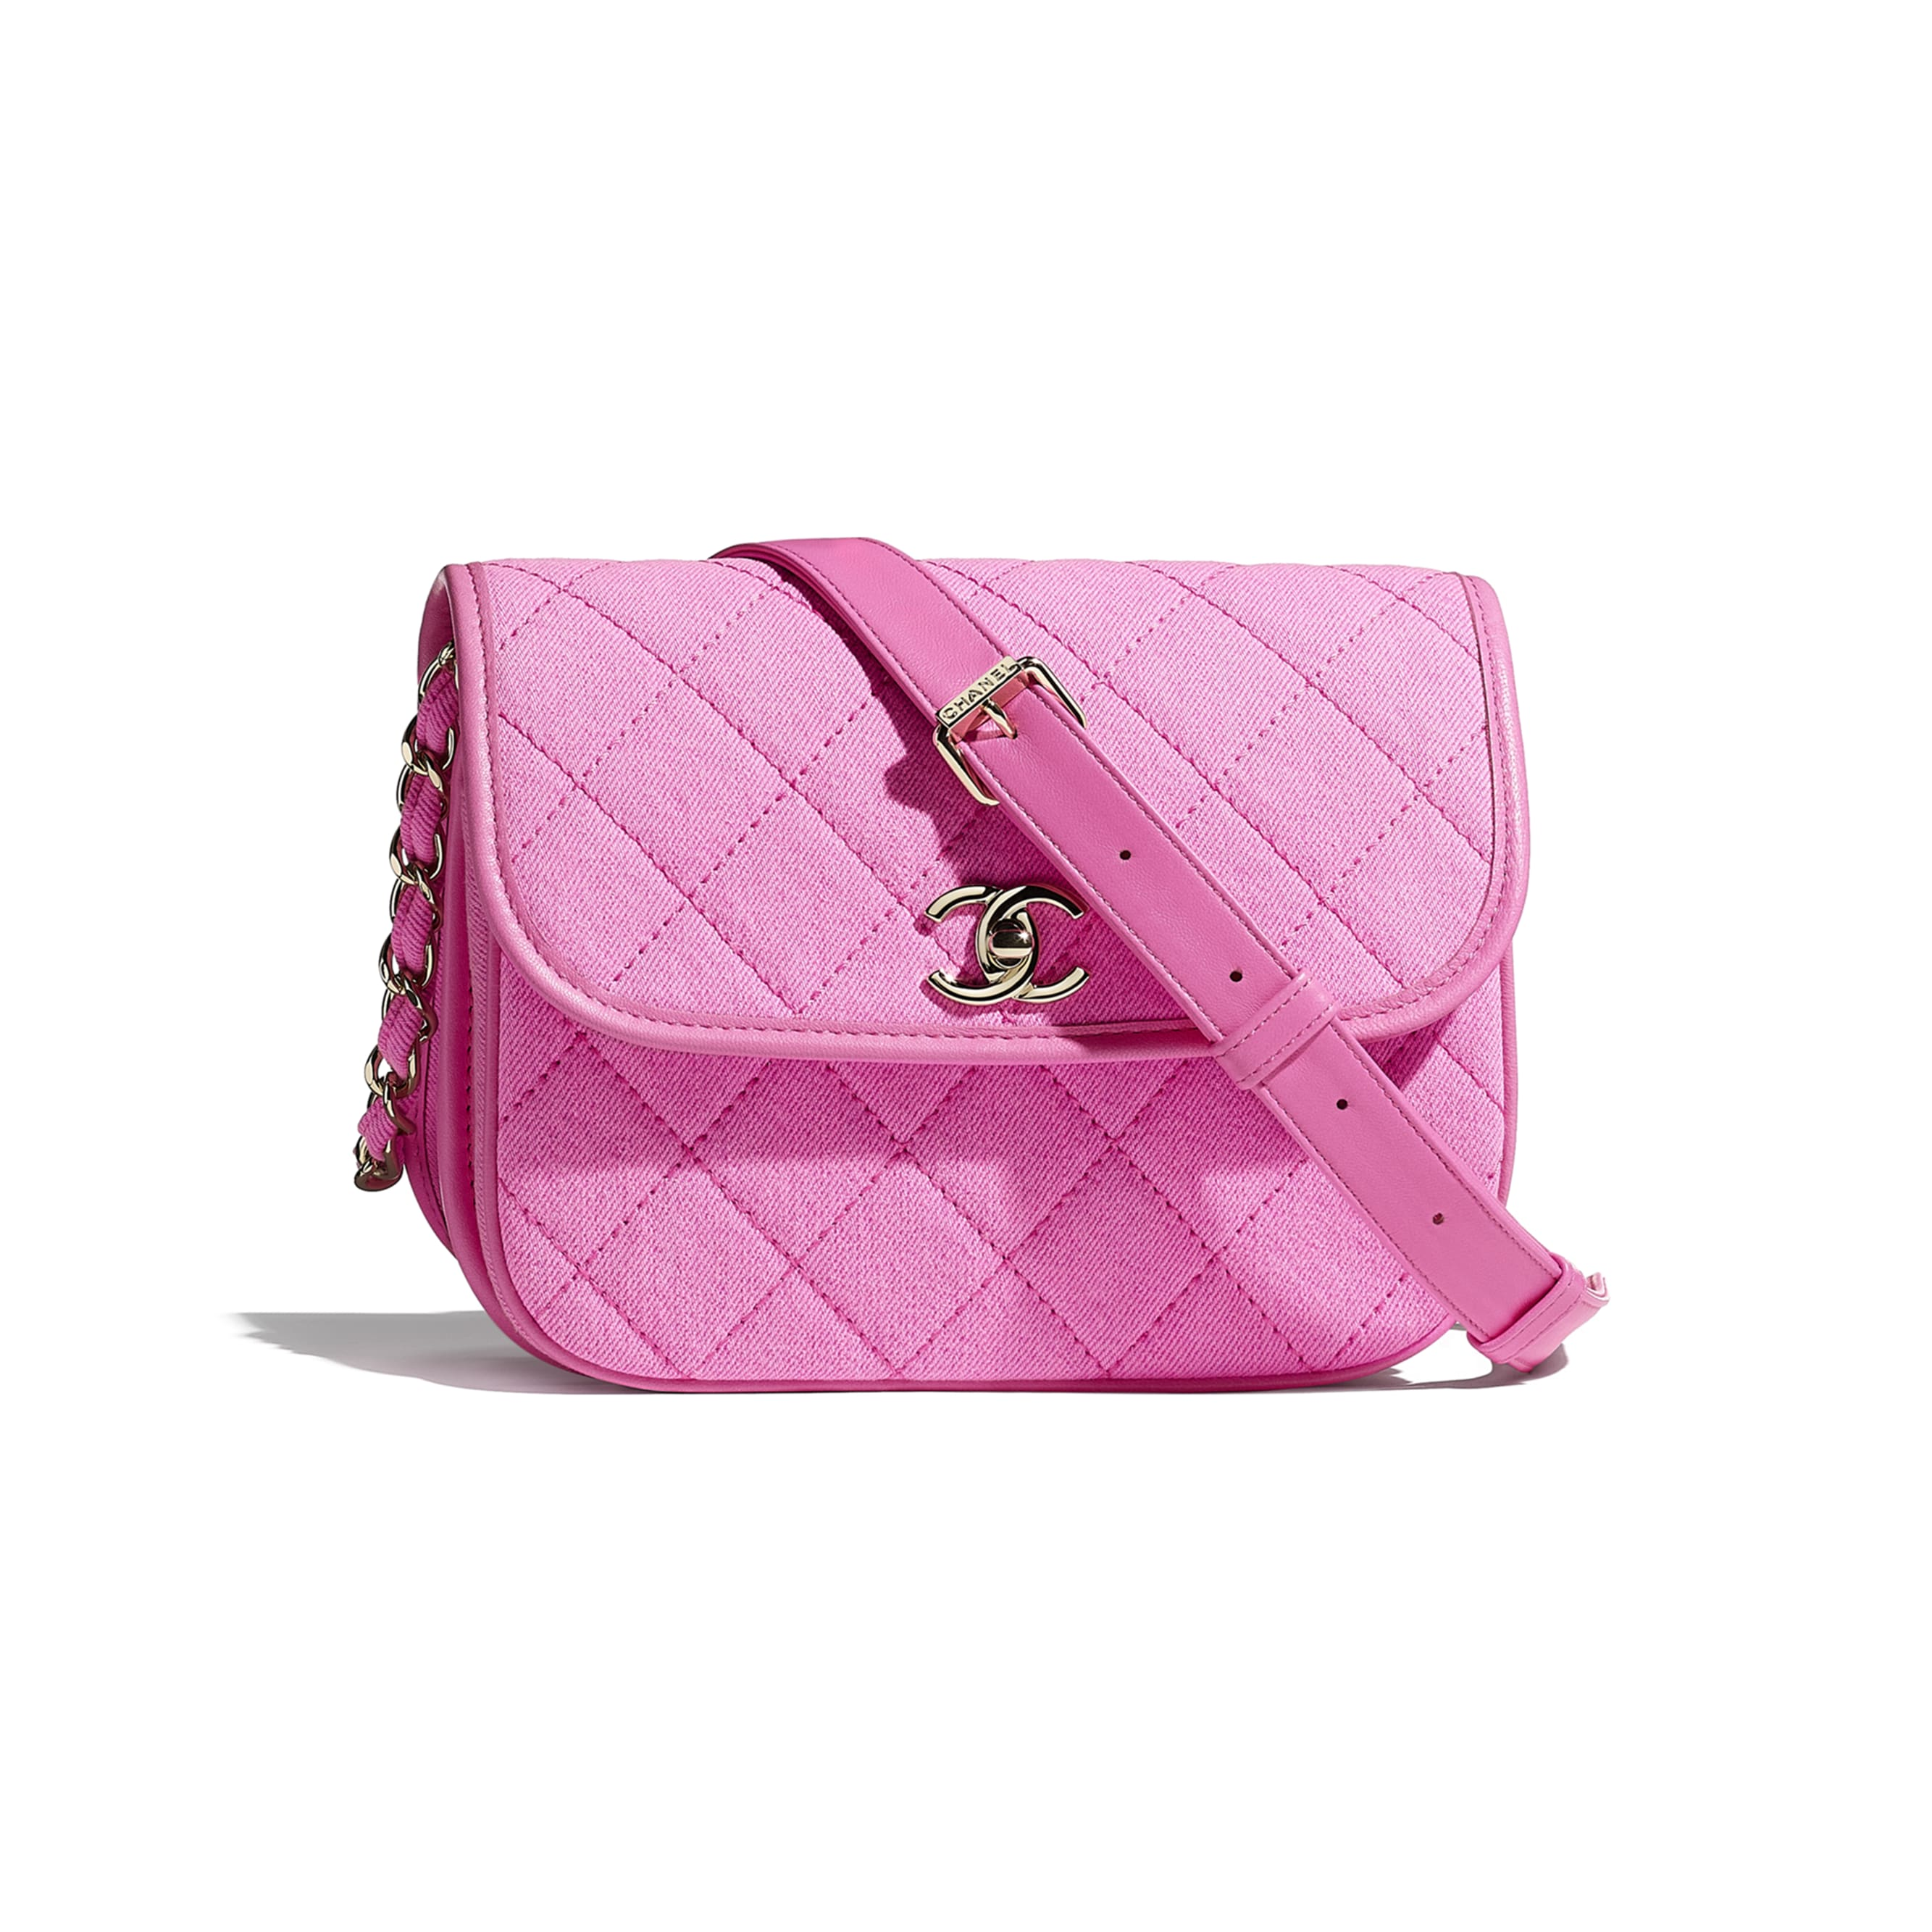 Small Messenger Bag - Neon Pink - Denim & Gold Metal - CHANEL - Default view - see standard sized version